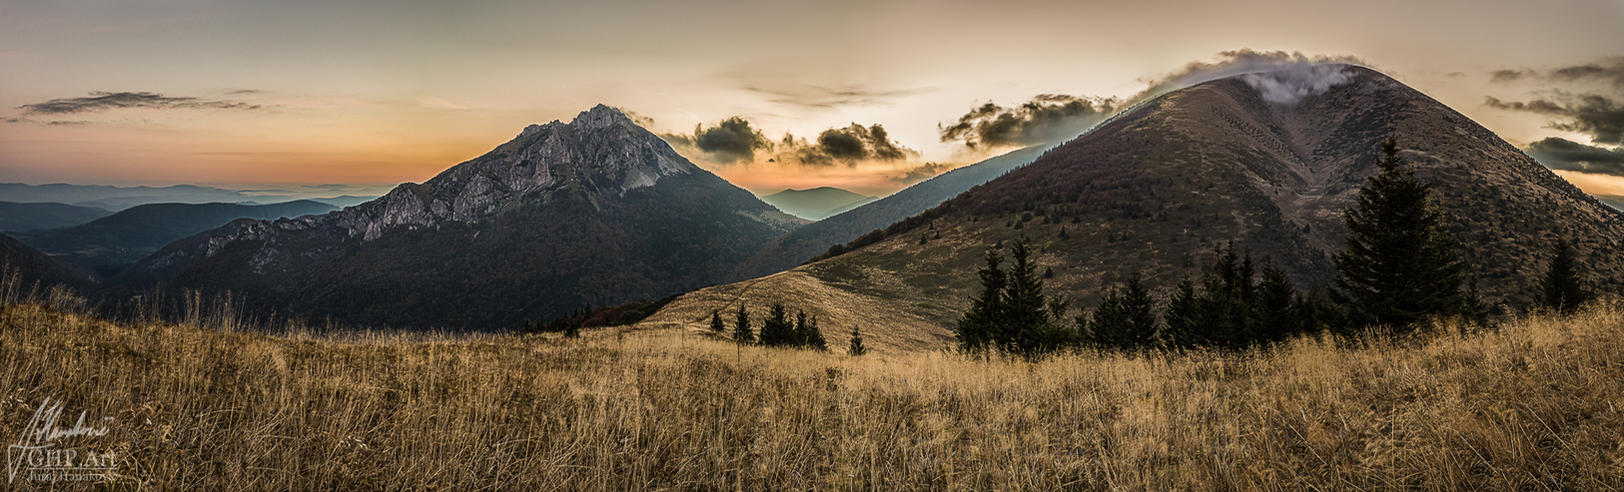 Sunrise behind Velky Rozsutec by GHPArt